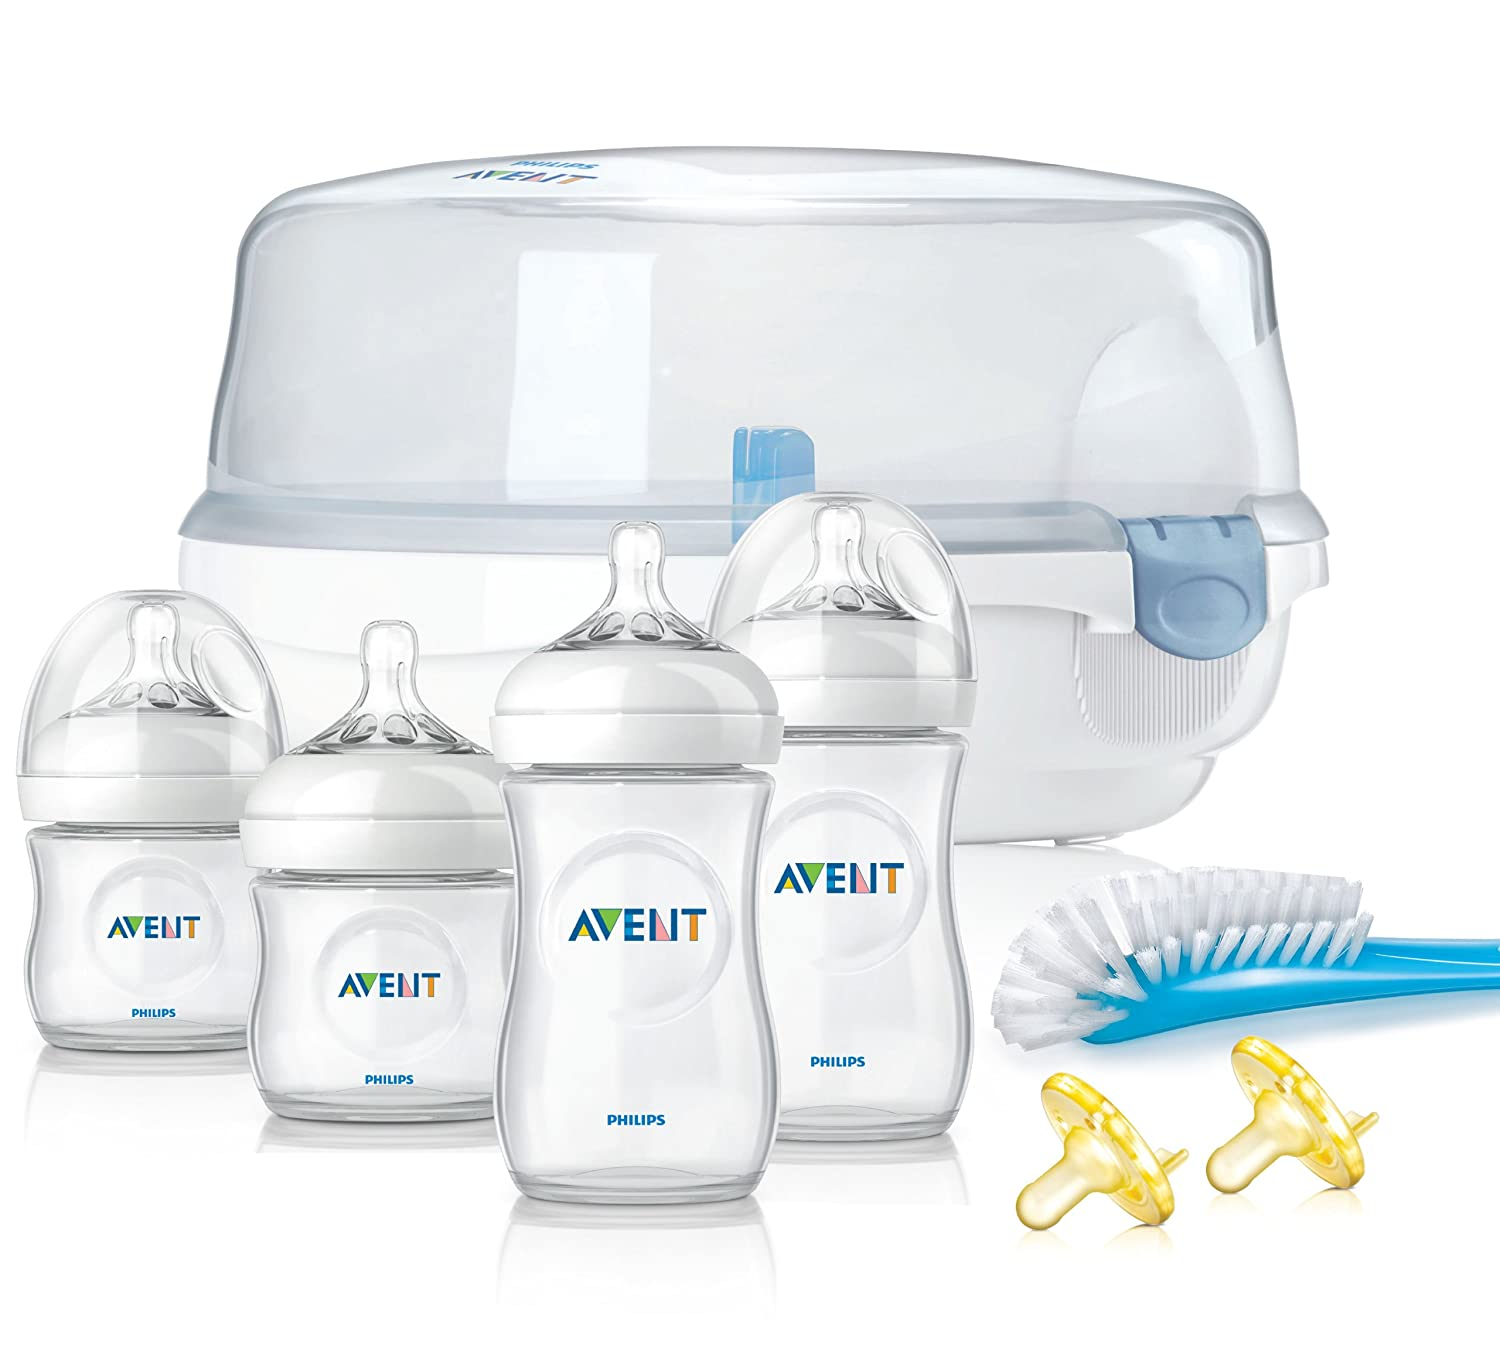 Amazon.com: Philips Avent Natural set básico de regalo, sin ...